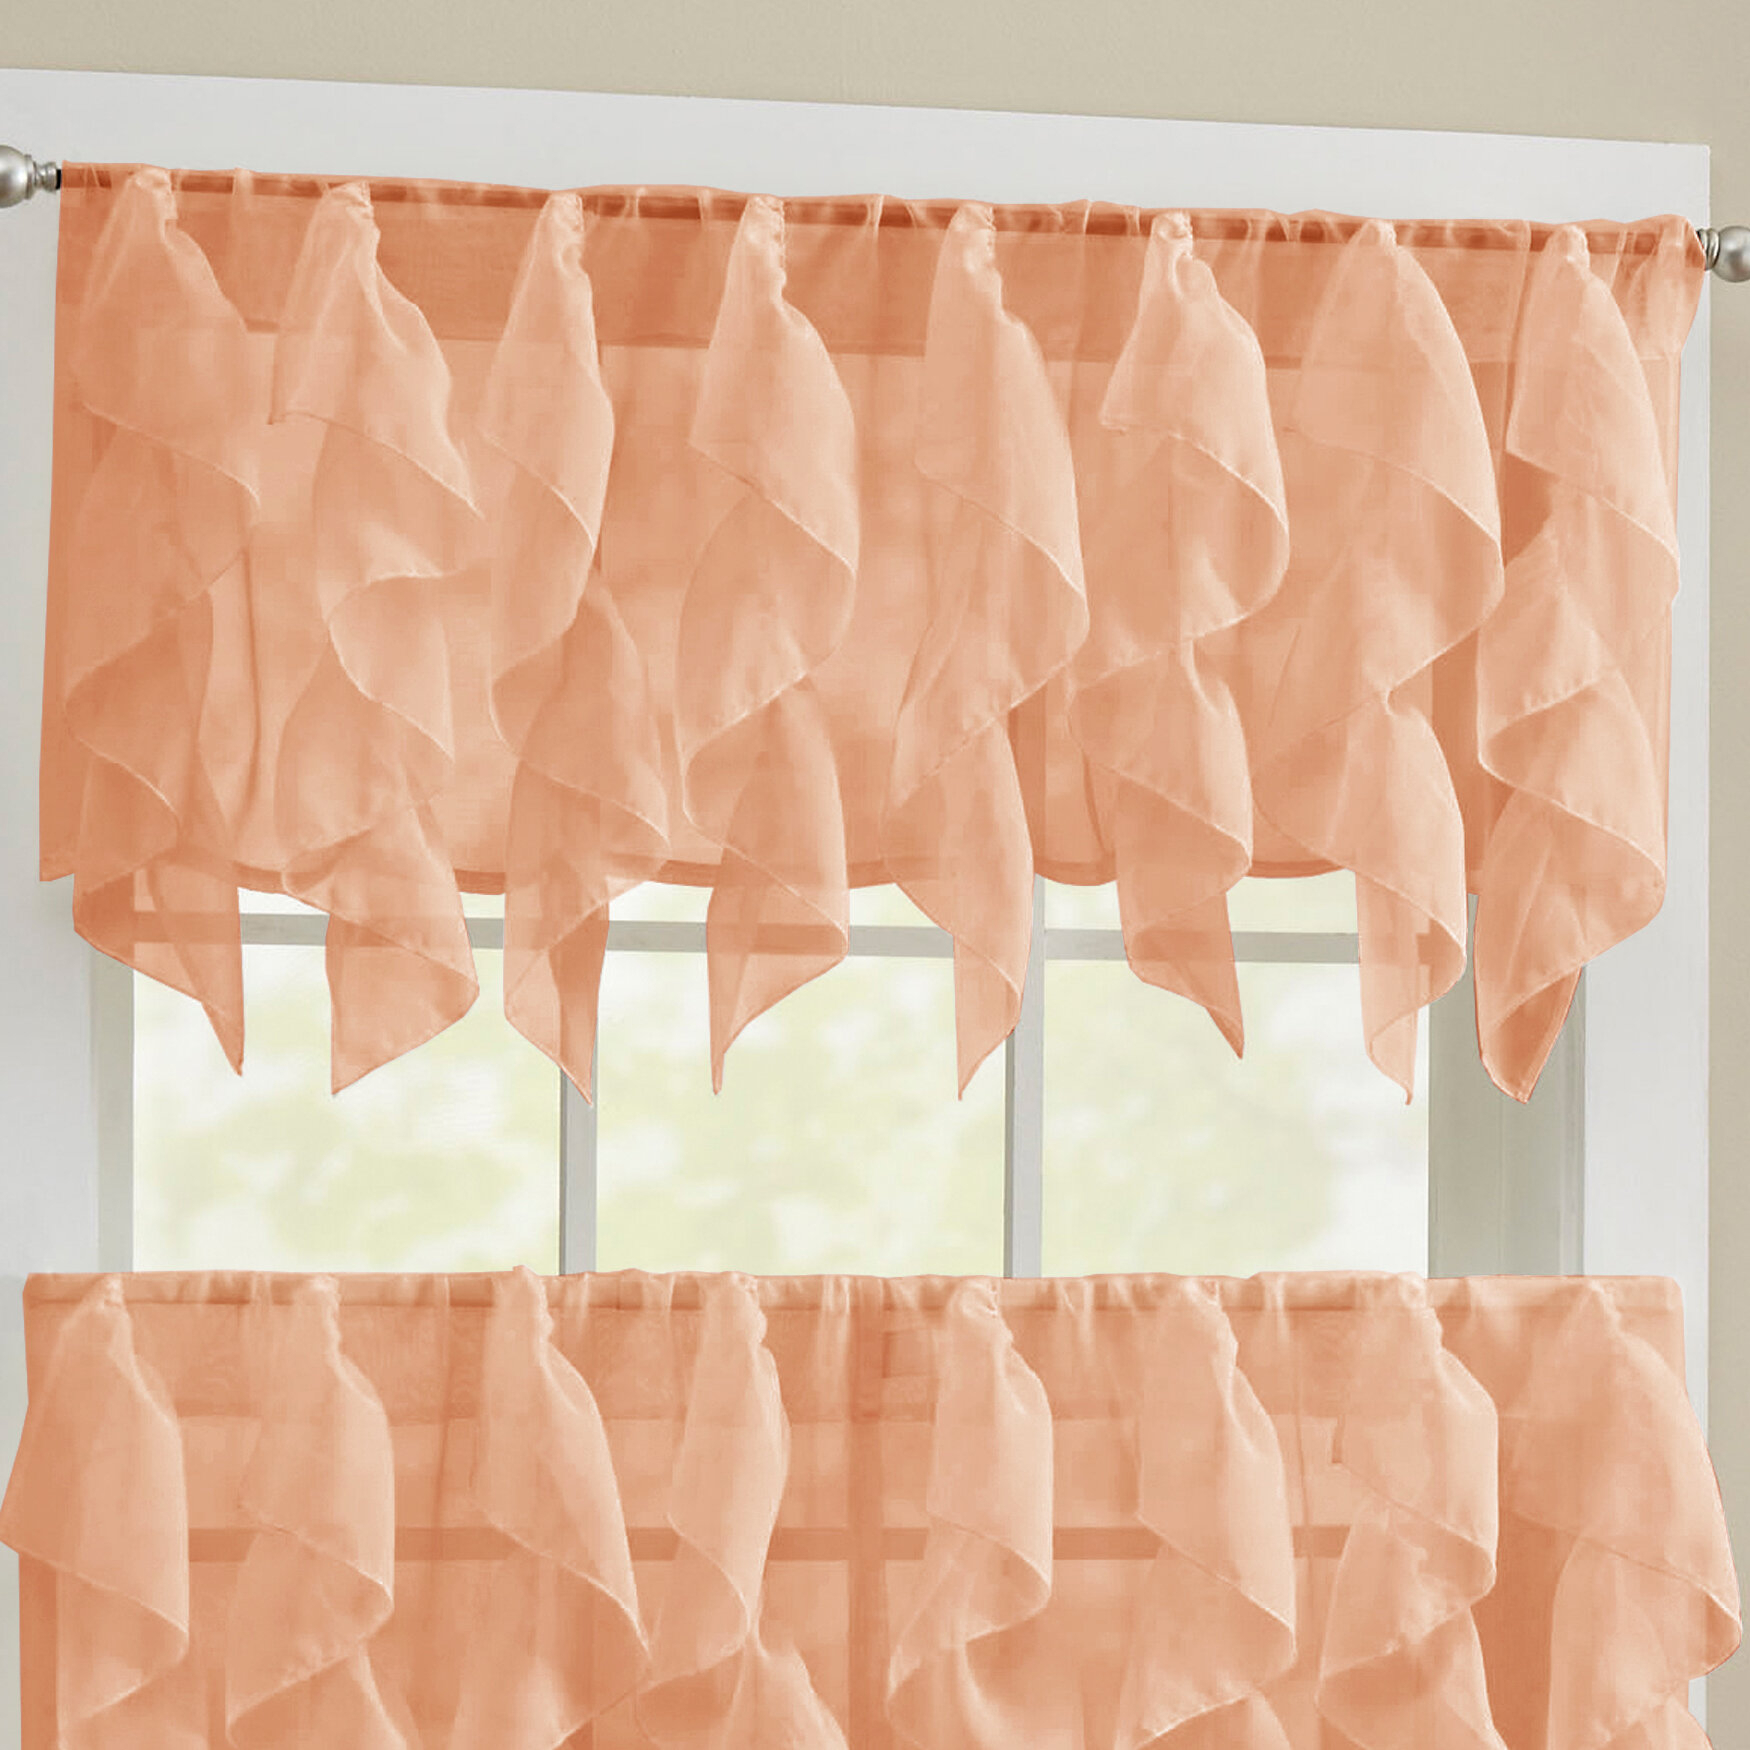 Alonza Window Valance with Maize Vertical Ruffled Waterfall Valance and Curtain Tiers (Image 2 of 20)